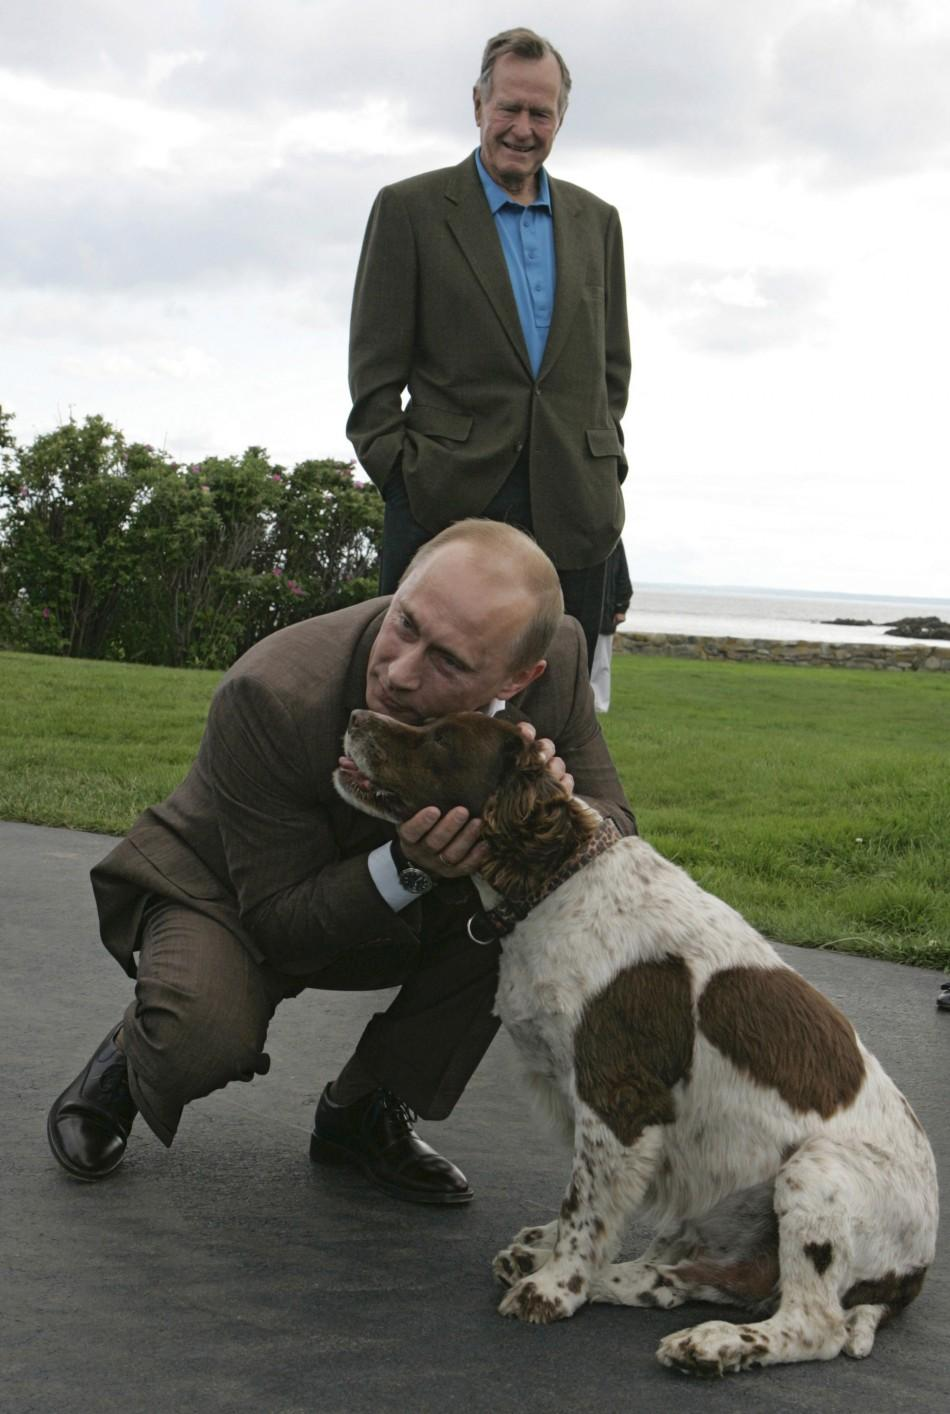 Russia's President Vladimir Putin strokes a dog on his arrival to the family home of former U.S. President George H. W. Bush in Kennebunkport